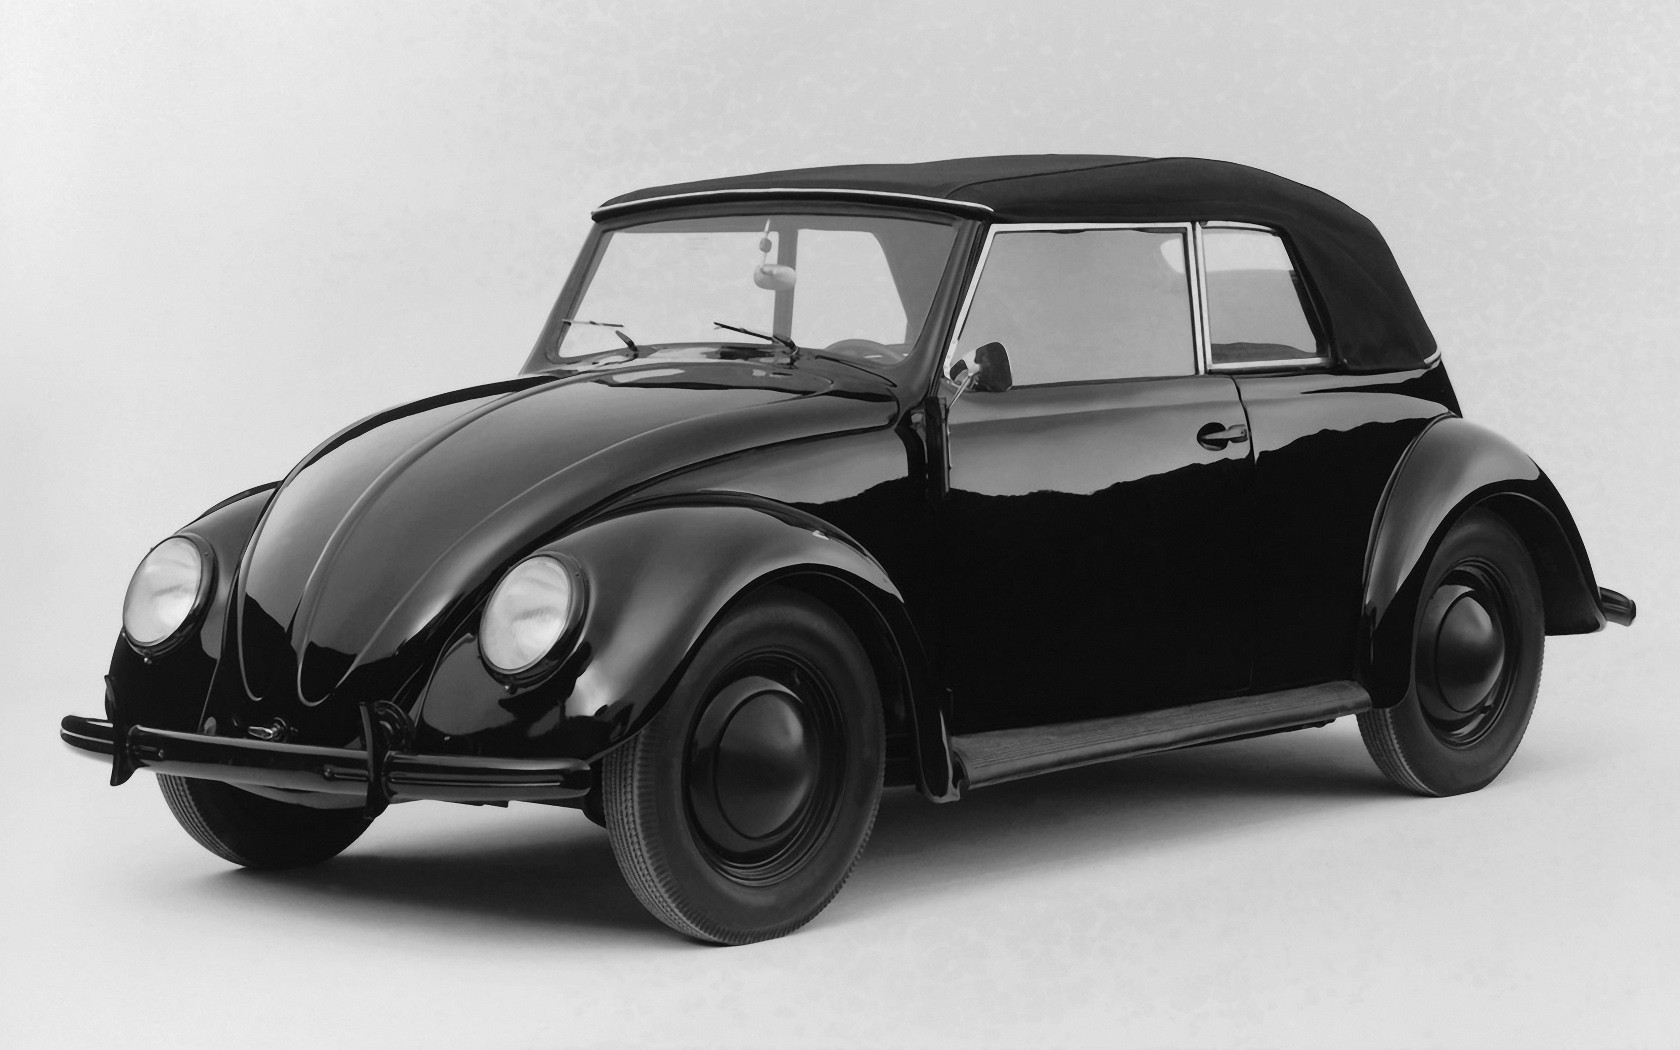 volkswagen beetle black cars HD Wallpaper